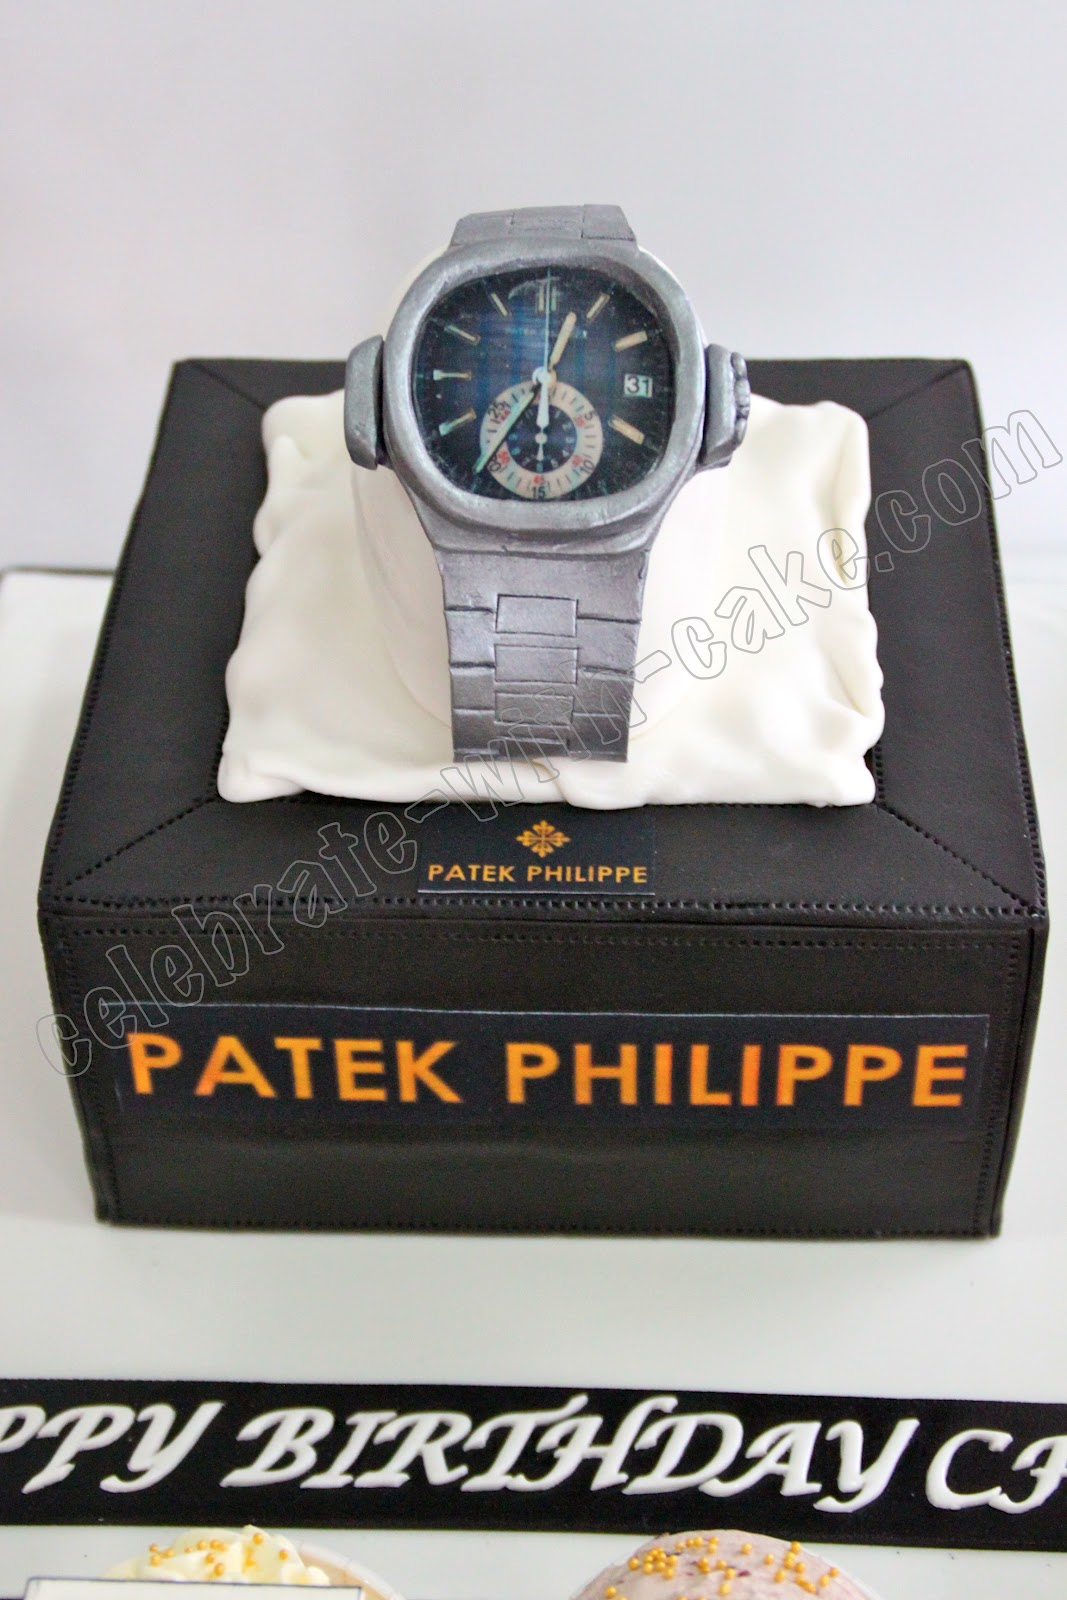 Patek Philippe Watch Topper Cake